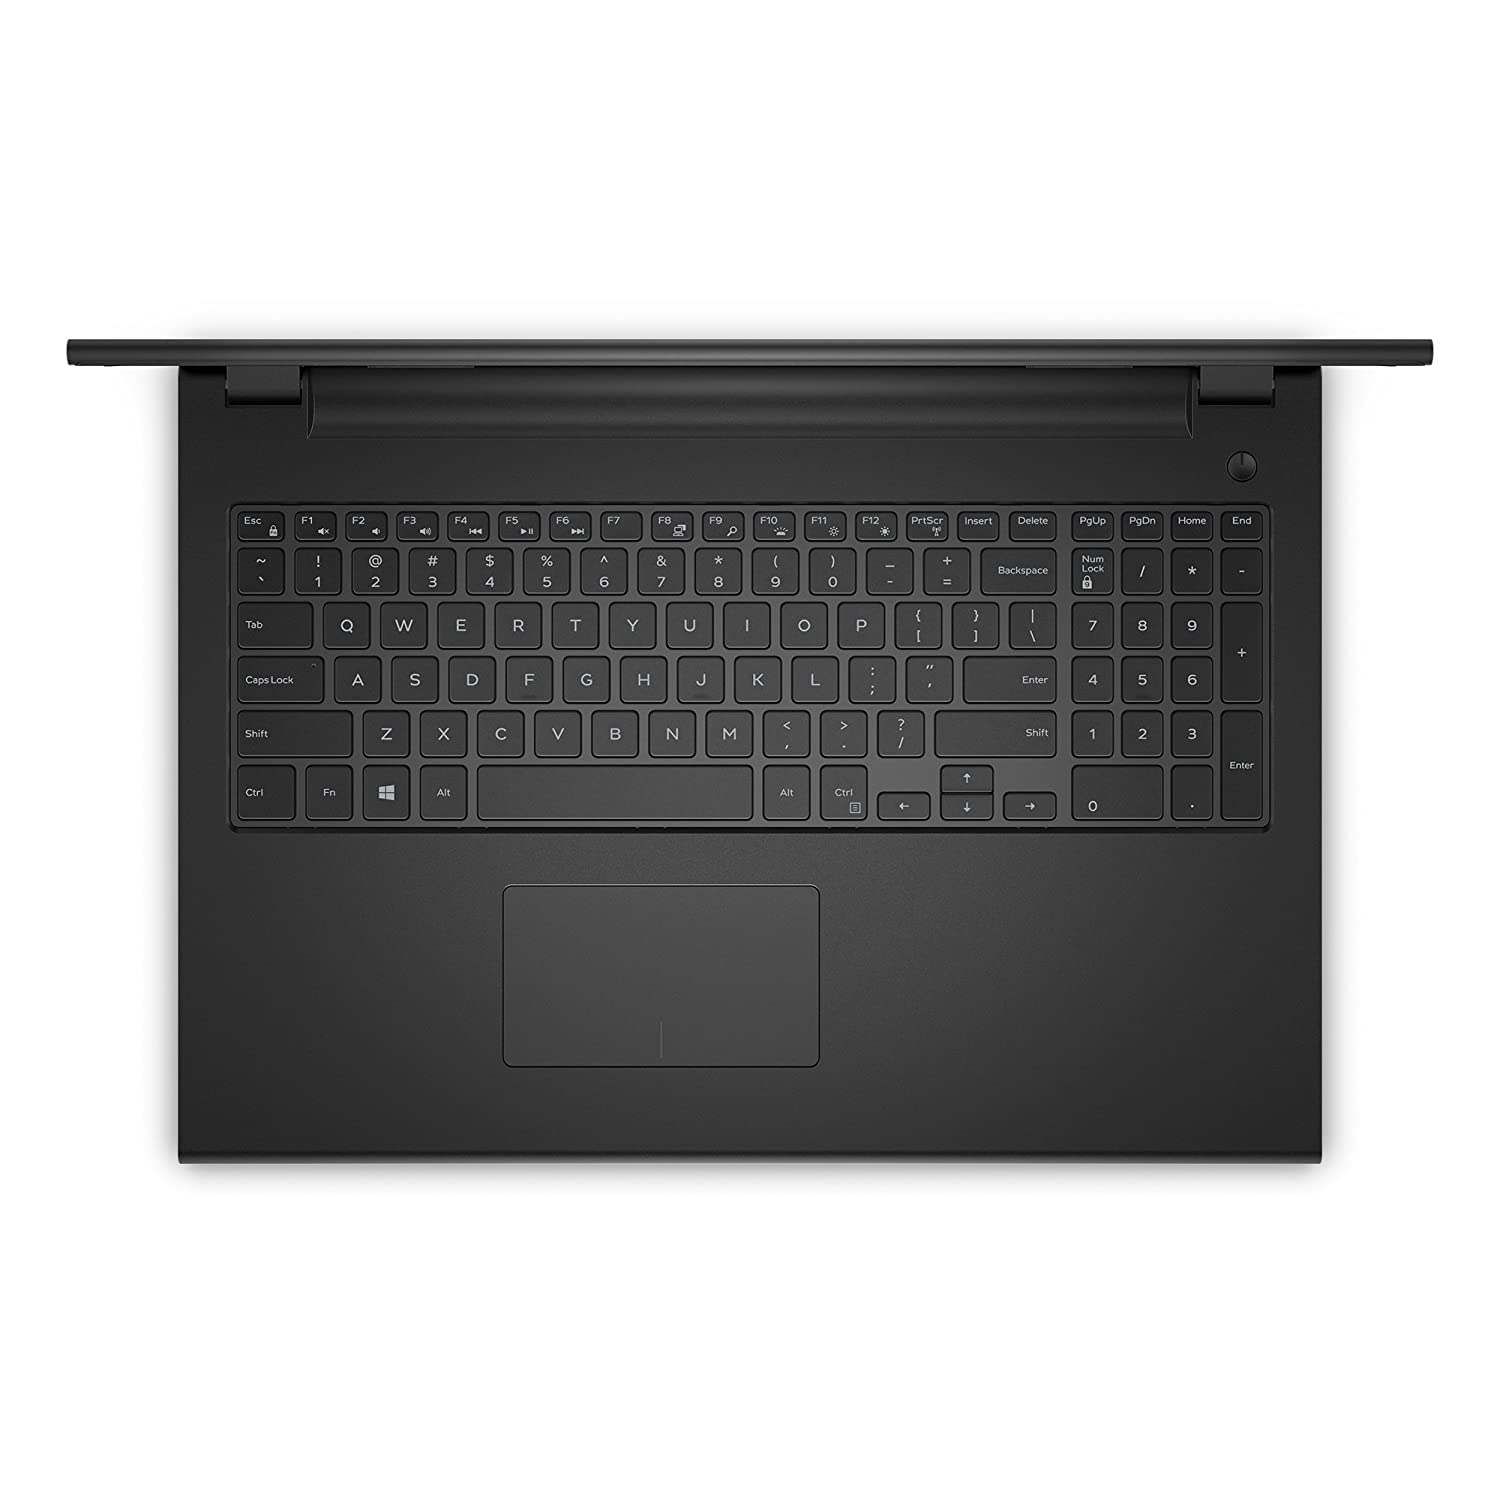 Amazon.com: Dell Inspiron 15 3000 Series 15.6 Inch Laptop (Intel Core i3 5005U, 4 GB RAM, 500 GB HDD, Black, Window 10: Computers & Accessories